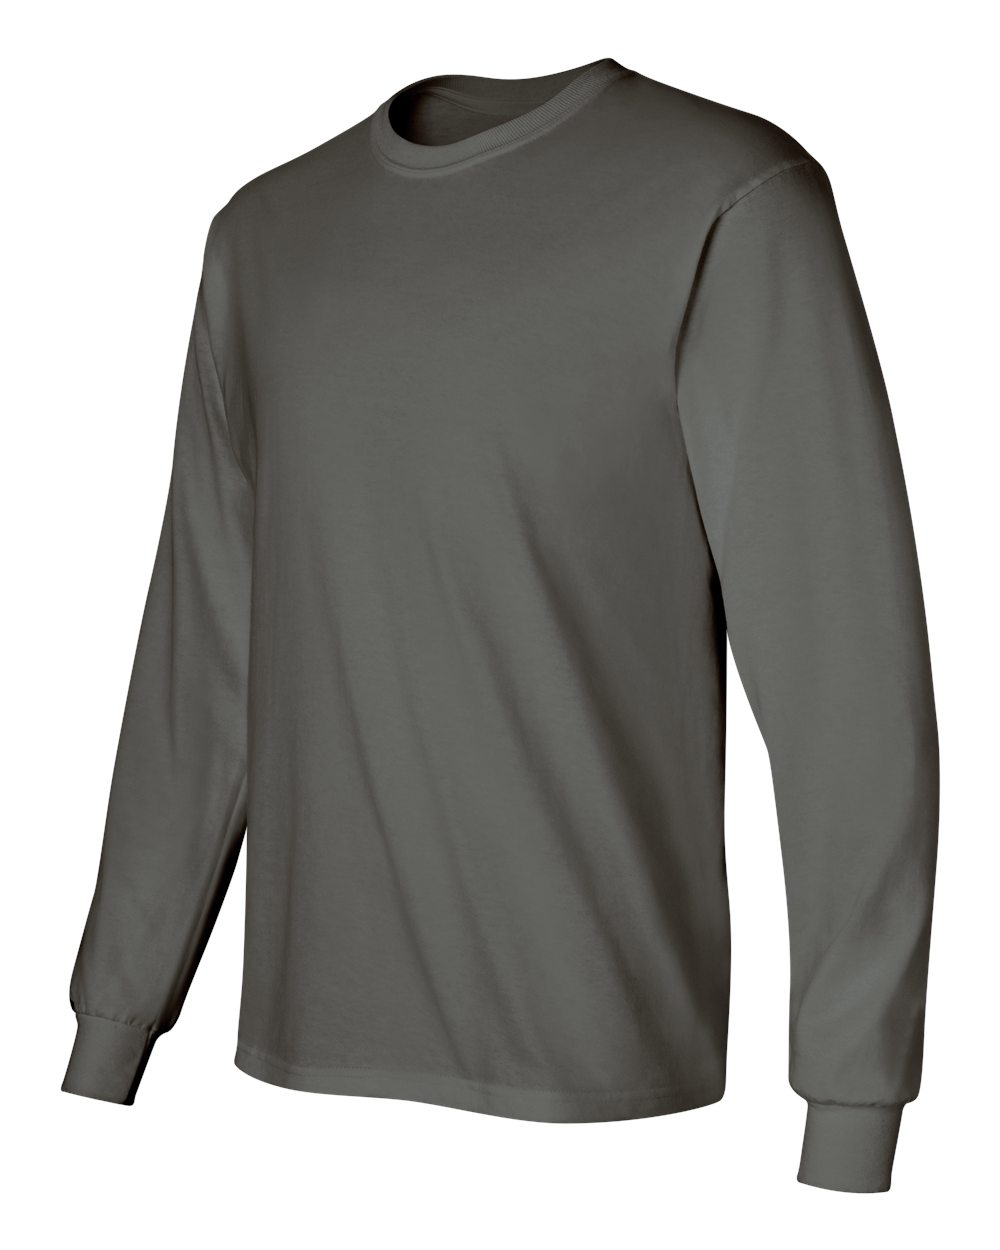 Gildan-Men-039-s-Ultra-Cotton-6-oz-Long-Sleeve-T-Shirt-G240-S-5XL thumbnail 19